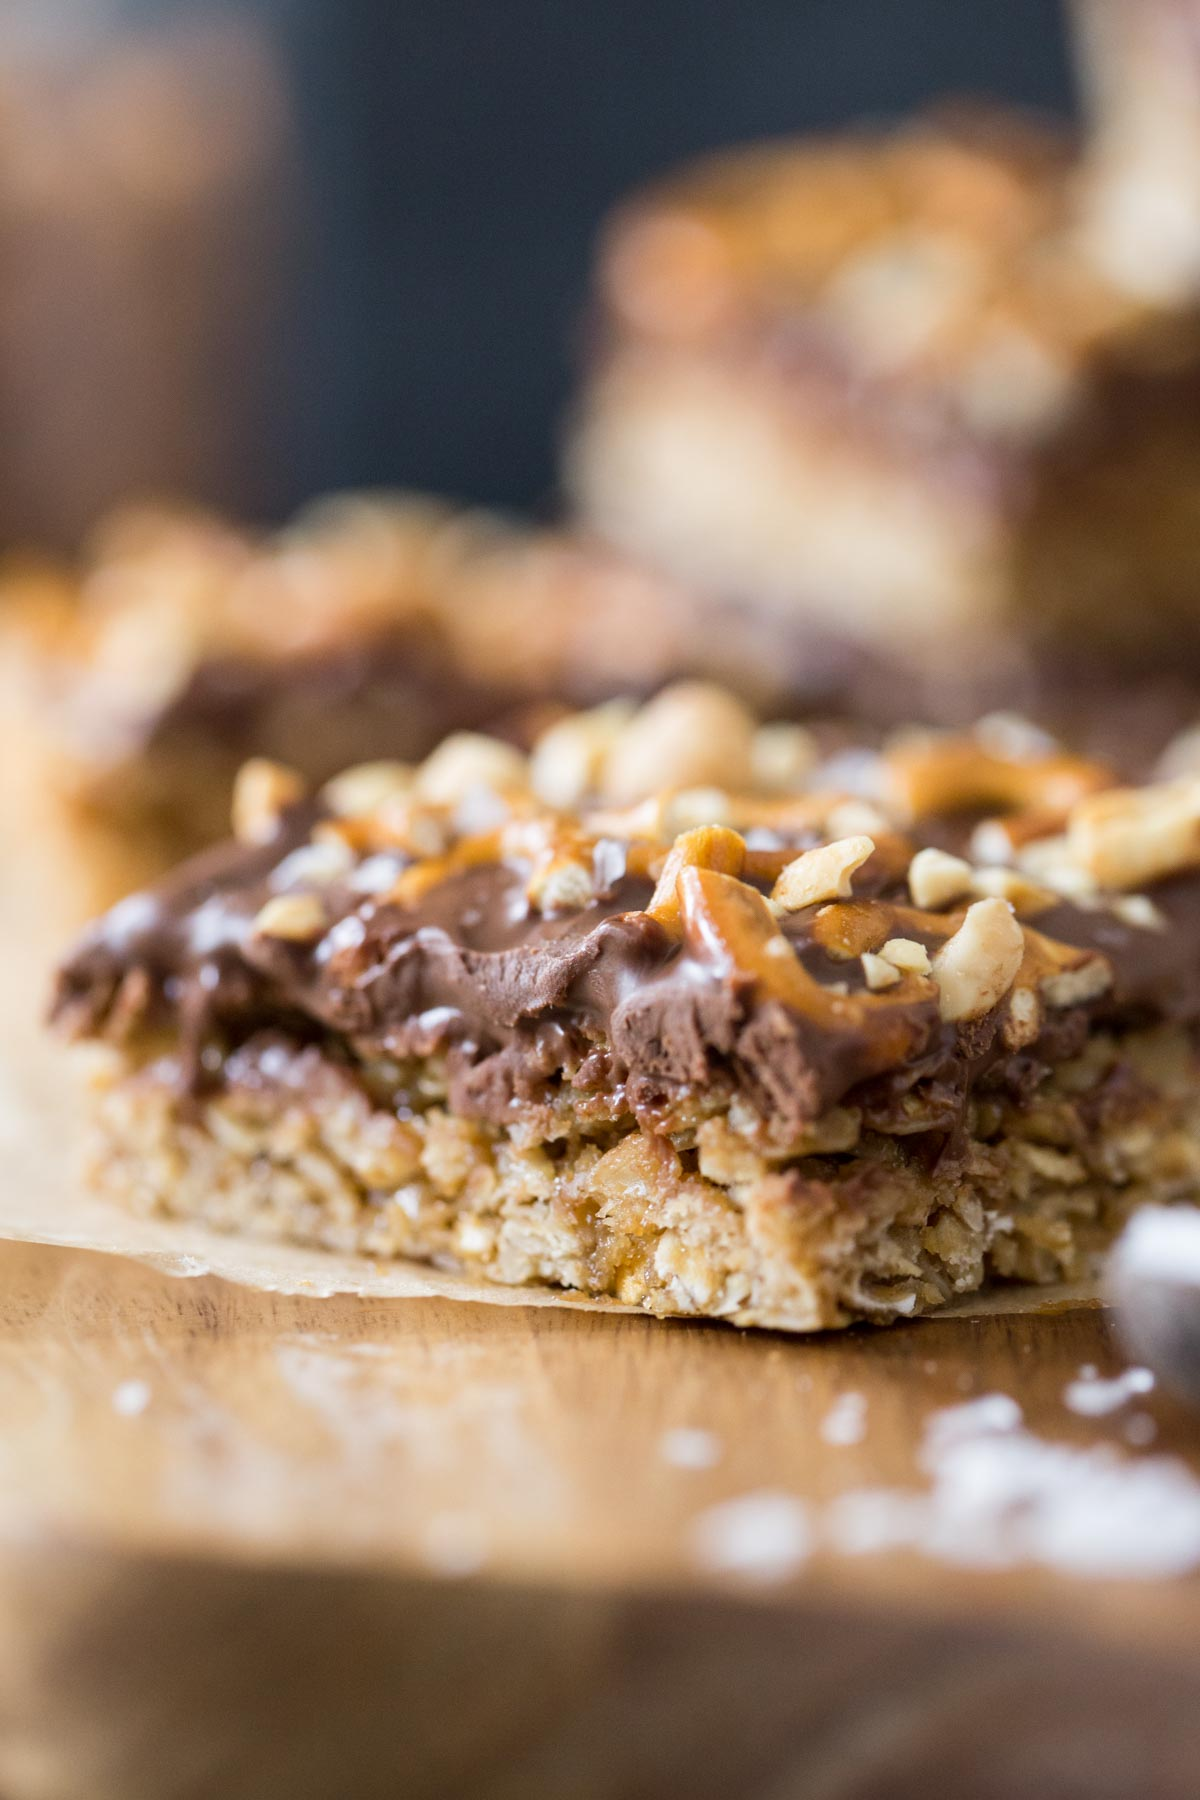 A close up view of the oatmeal and peanut butter chocolate layer of an Oh Henry Bar from the side view